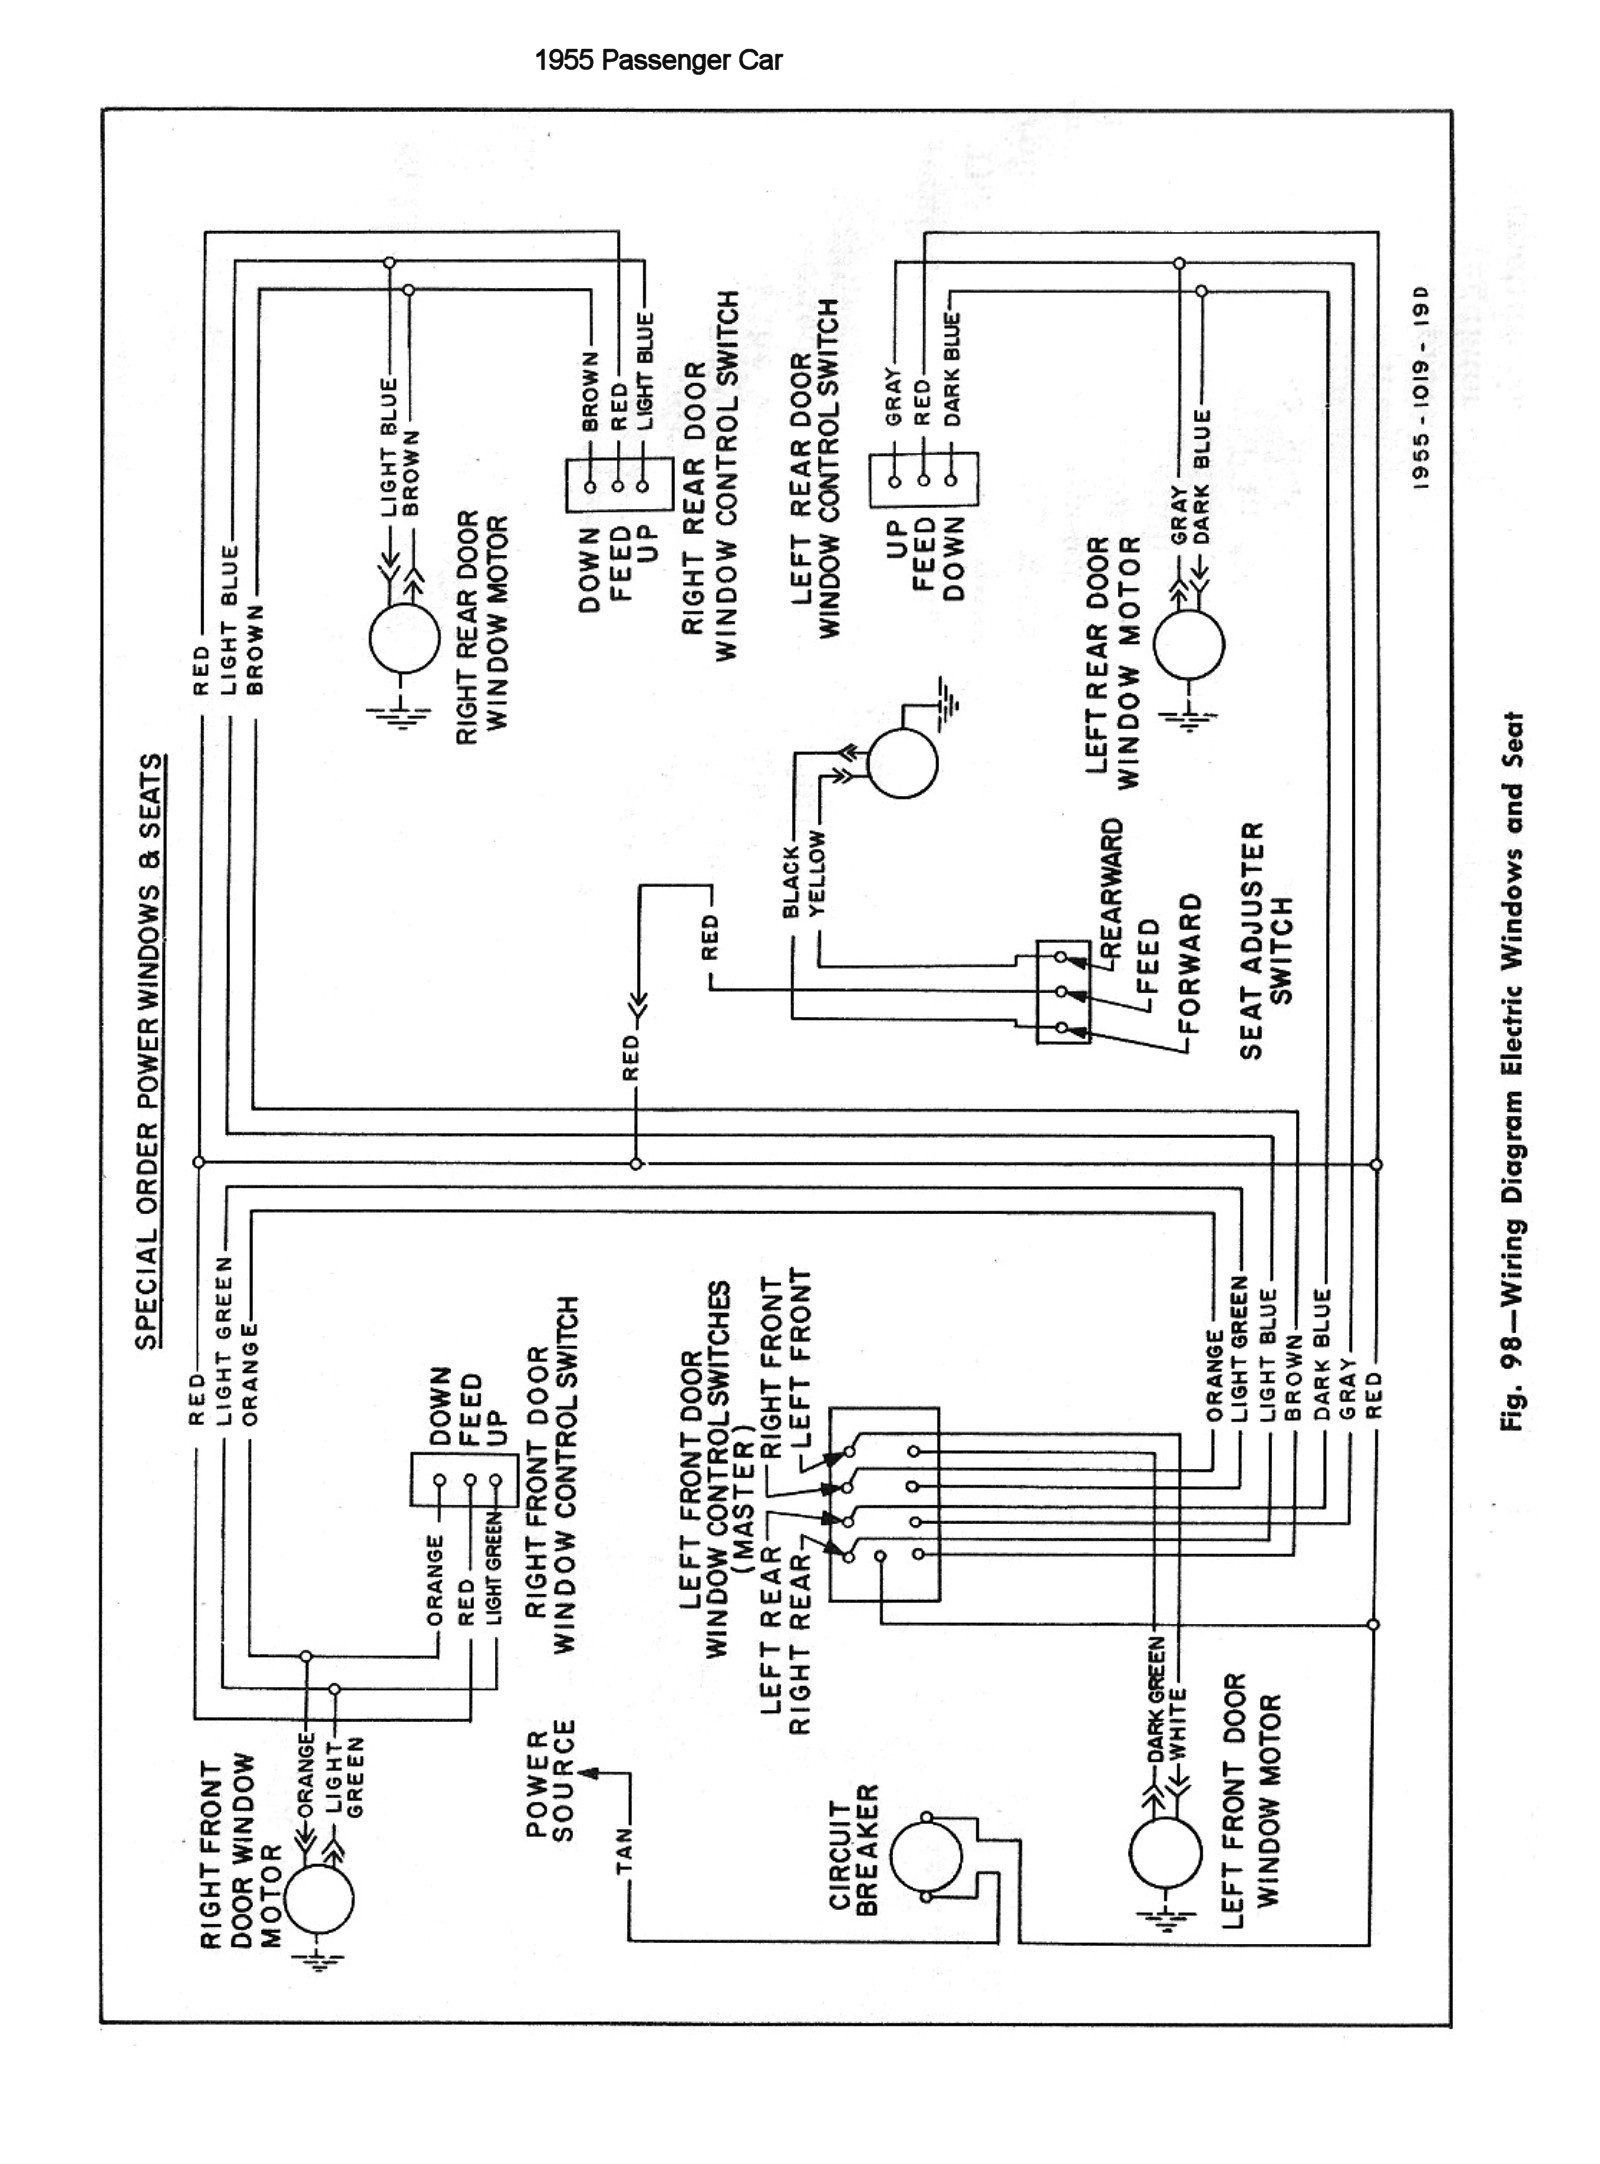 1955 chevy turn signal wiring diagram wiringdiagram org rh pinterest com chevy turn signal switch wiring diagram chevy cruze turn signal wiring diagram